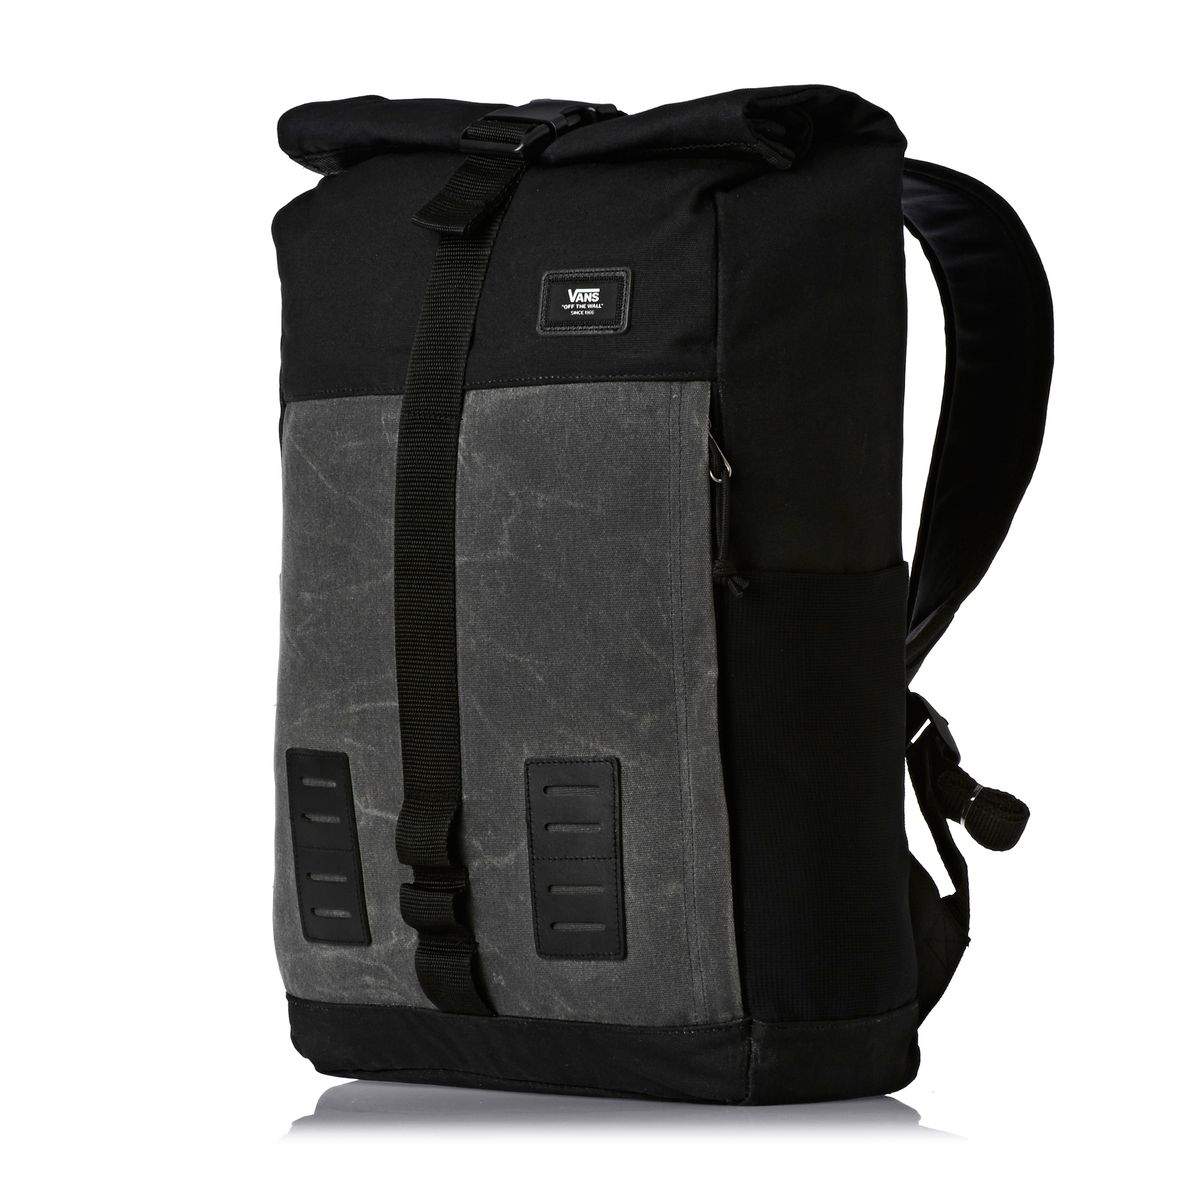 vans-backpacks-vans-plot-roll-top-backpack-asphalt-black